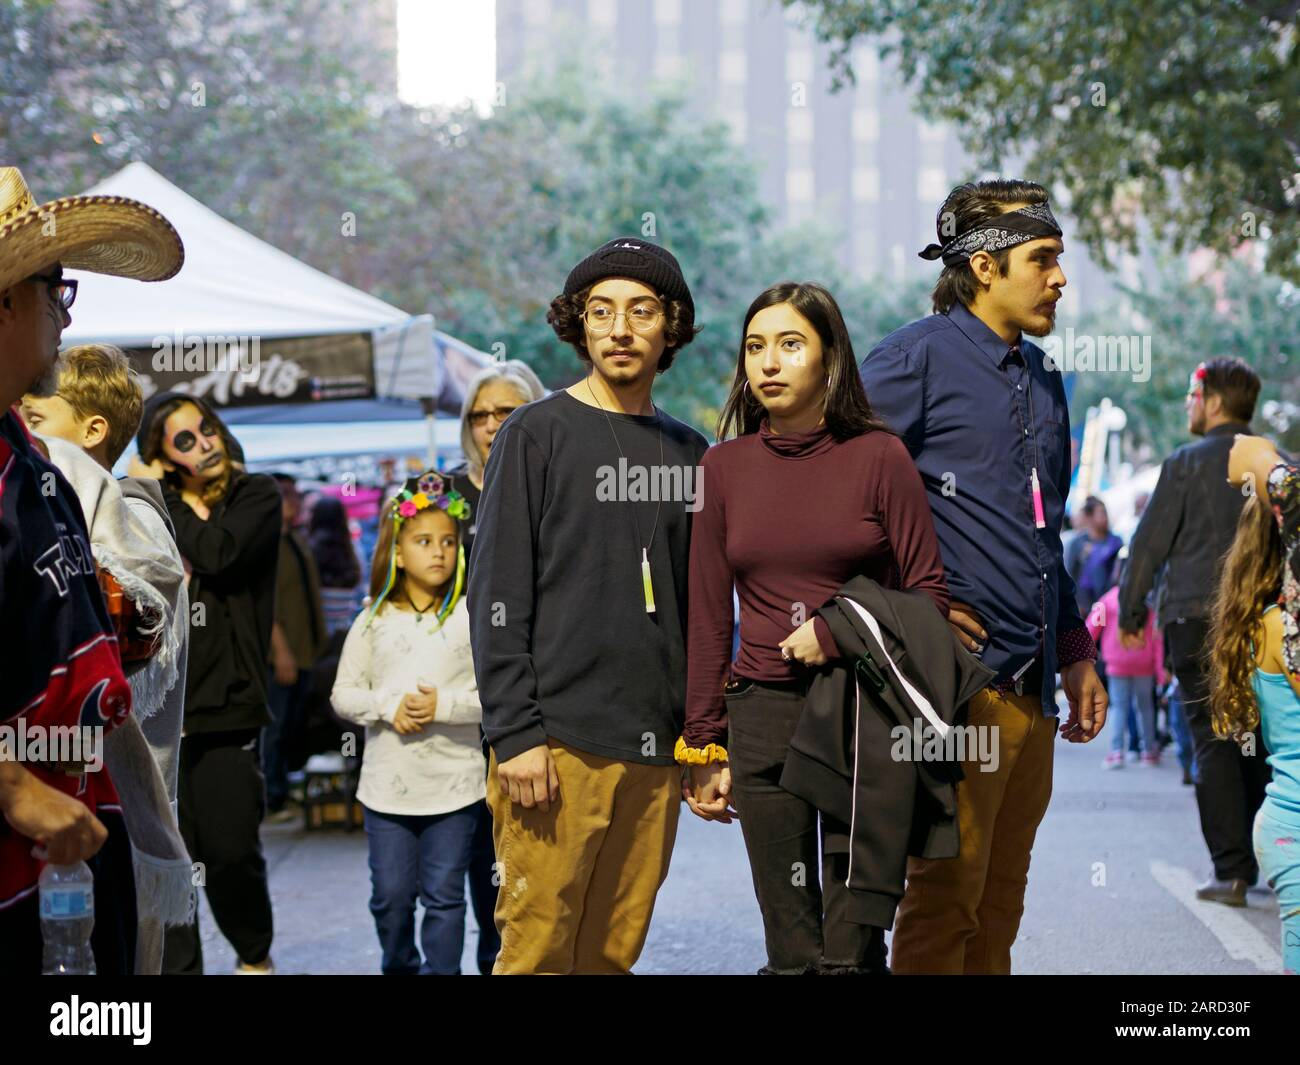 a-young-couple-holds-hands-in-downtown-corpus-christi-texas-usa-during-the-2019-dia-de-los-muertos-celebration-2ARD30F.jpg